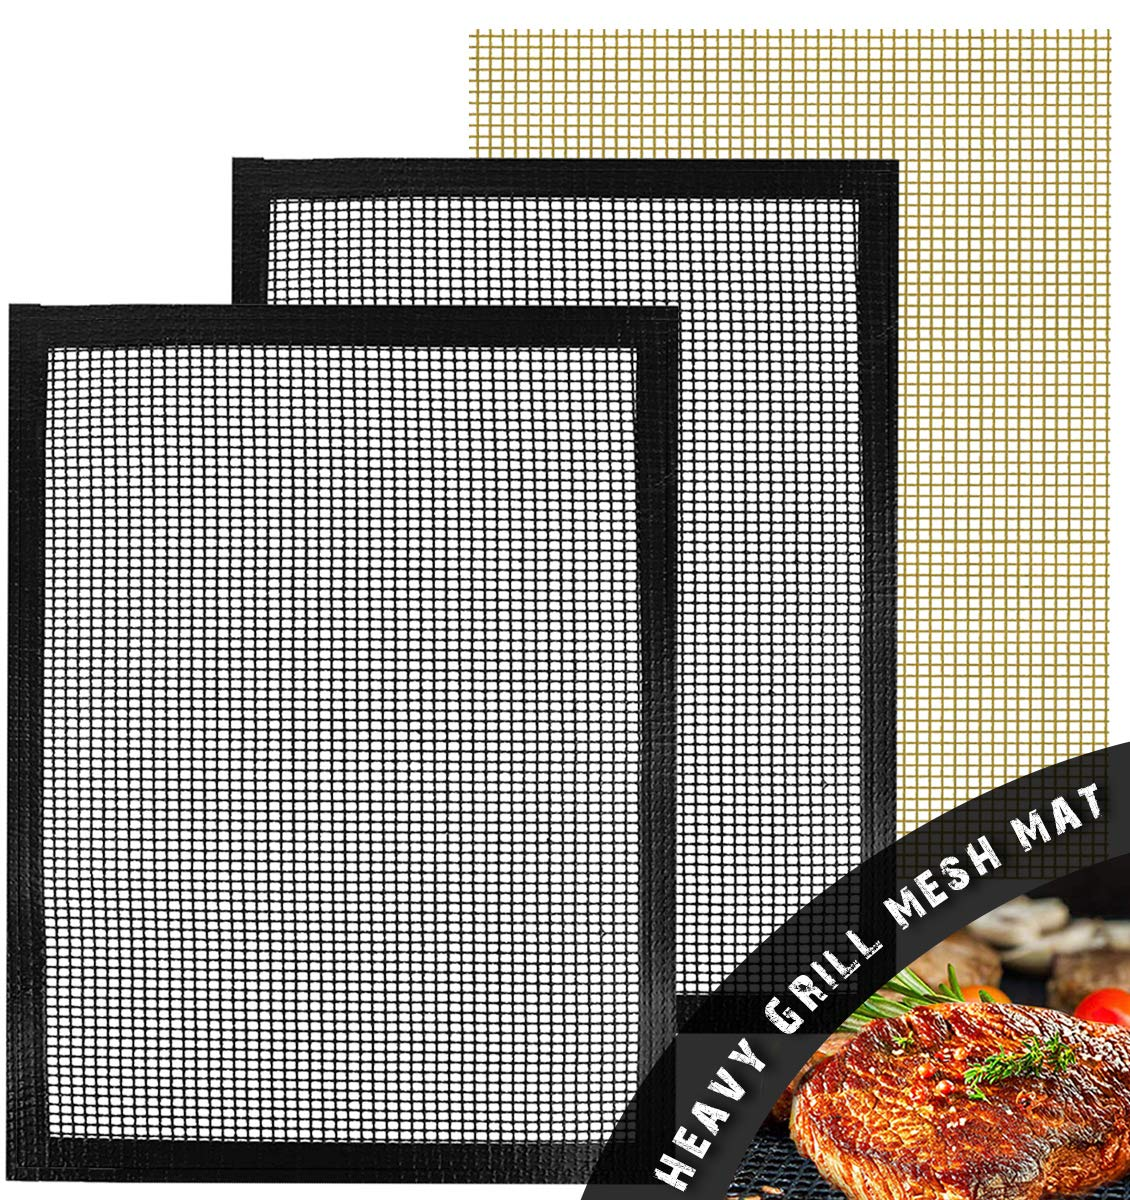 Wodahan BBQ mesh Grill mats(Set of 3)-Heavy Duty Non Stick mats,Reusable,13×15.75in,Suitable for Charcoal Electrical and Gas Grilling. by Wodahan